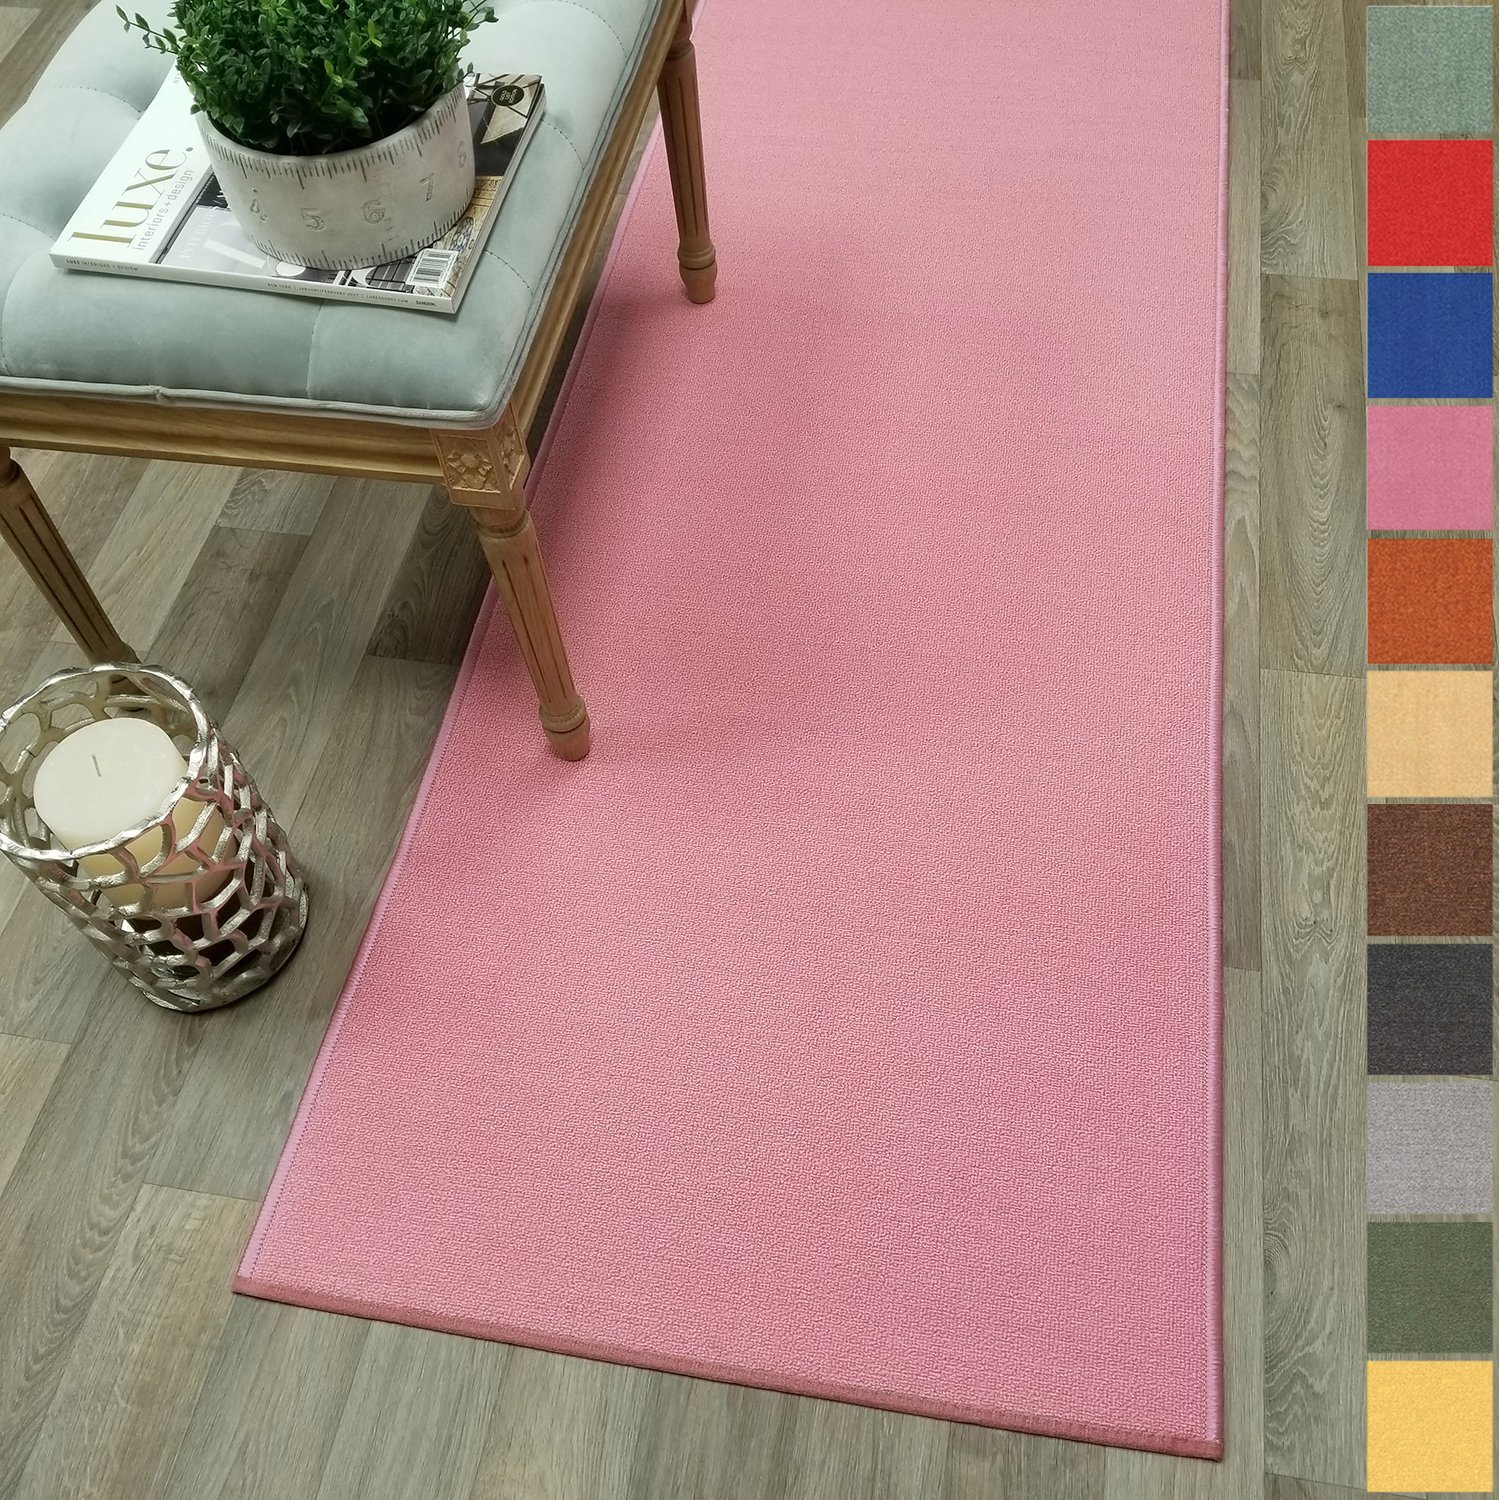 Kapaqua Custom Size PINK Solid Plain Rubber Backed Non-Slip Hallway Stair Runner Rug Carpet 22 inch Wide Choose Your Length 22in X 6ft